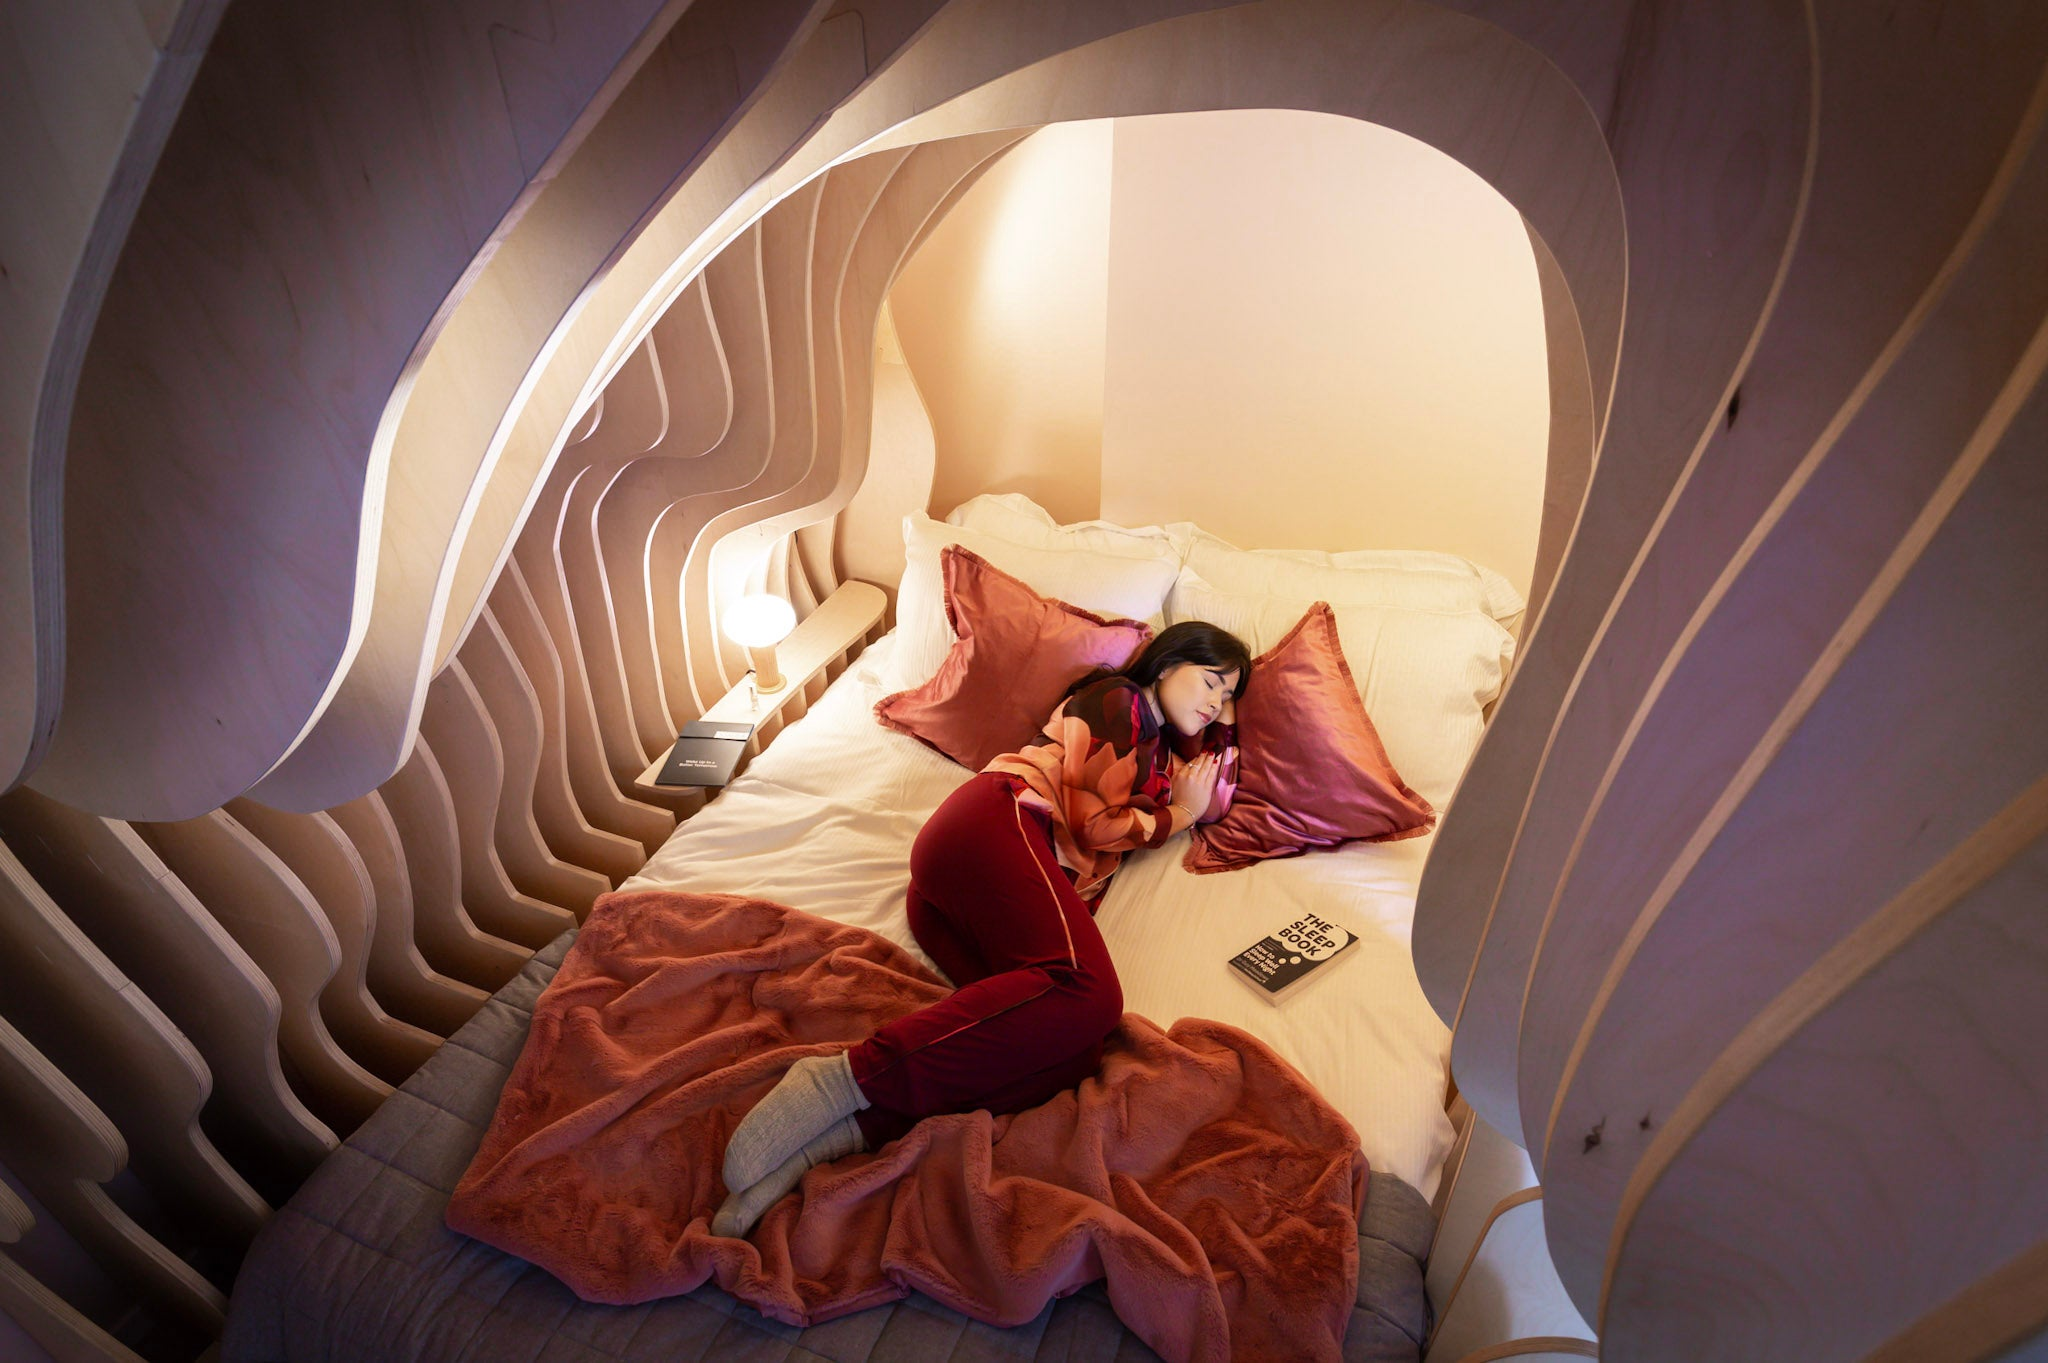 Hotel launches womb rooms to help guests 'sleep like a baby'